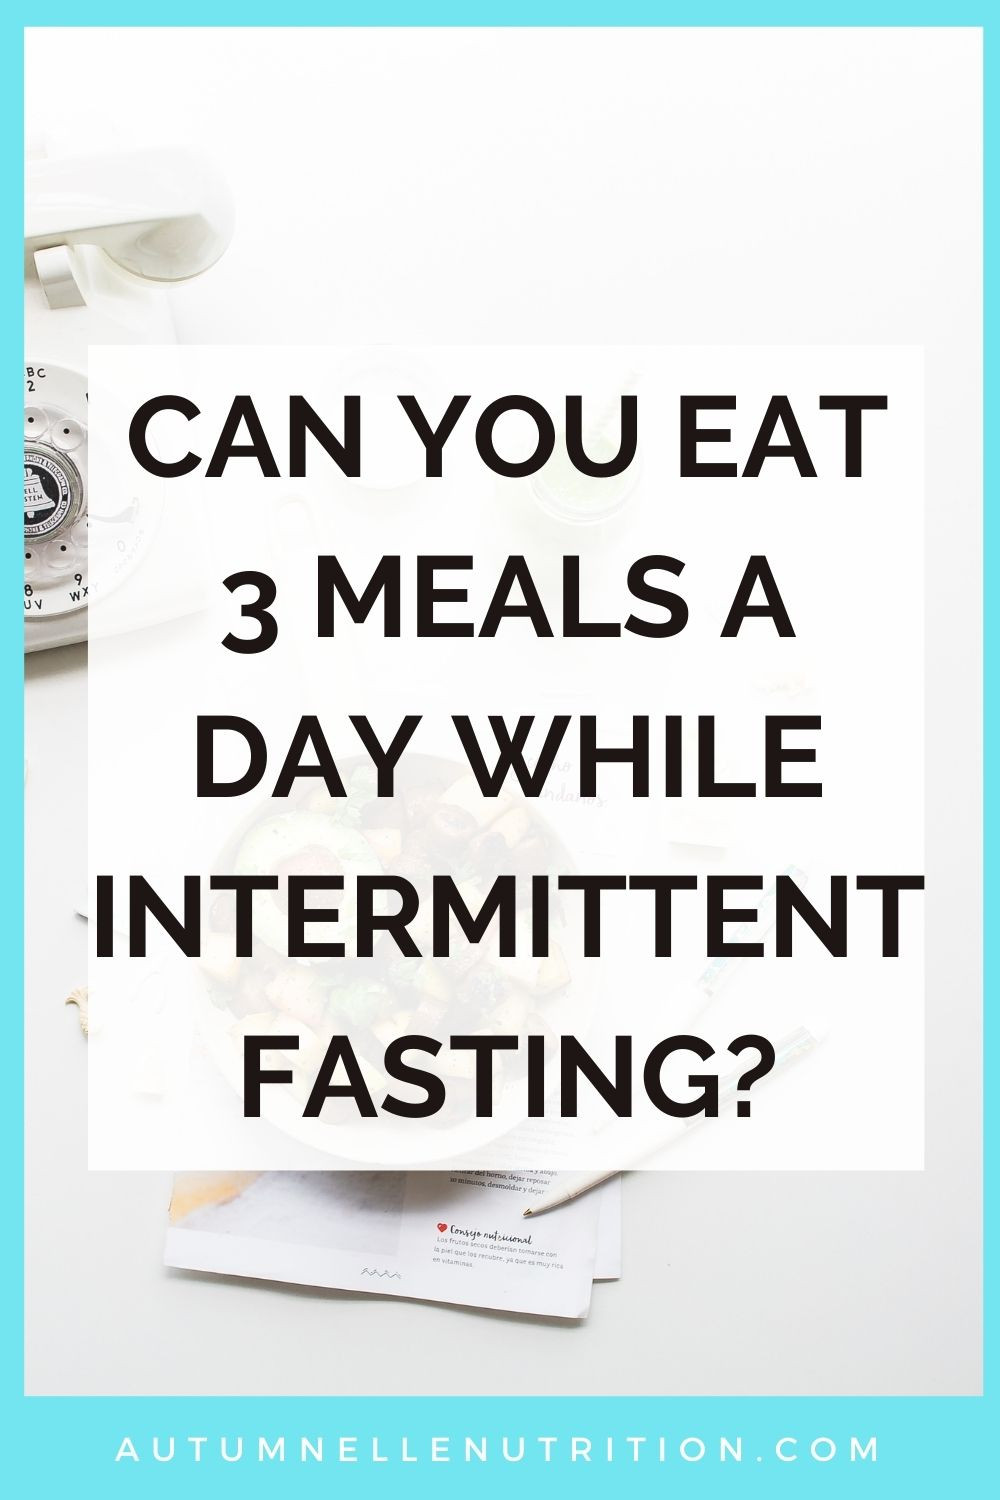 can you eat 3 meals a day while fasting